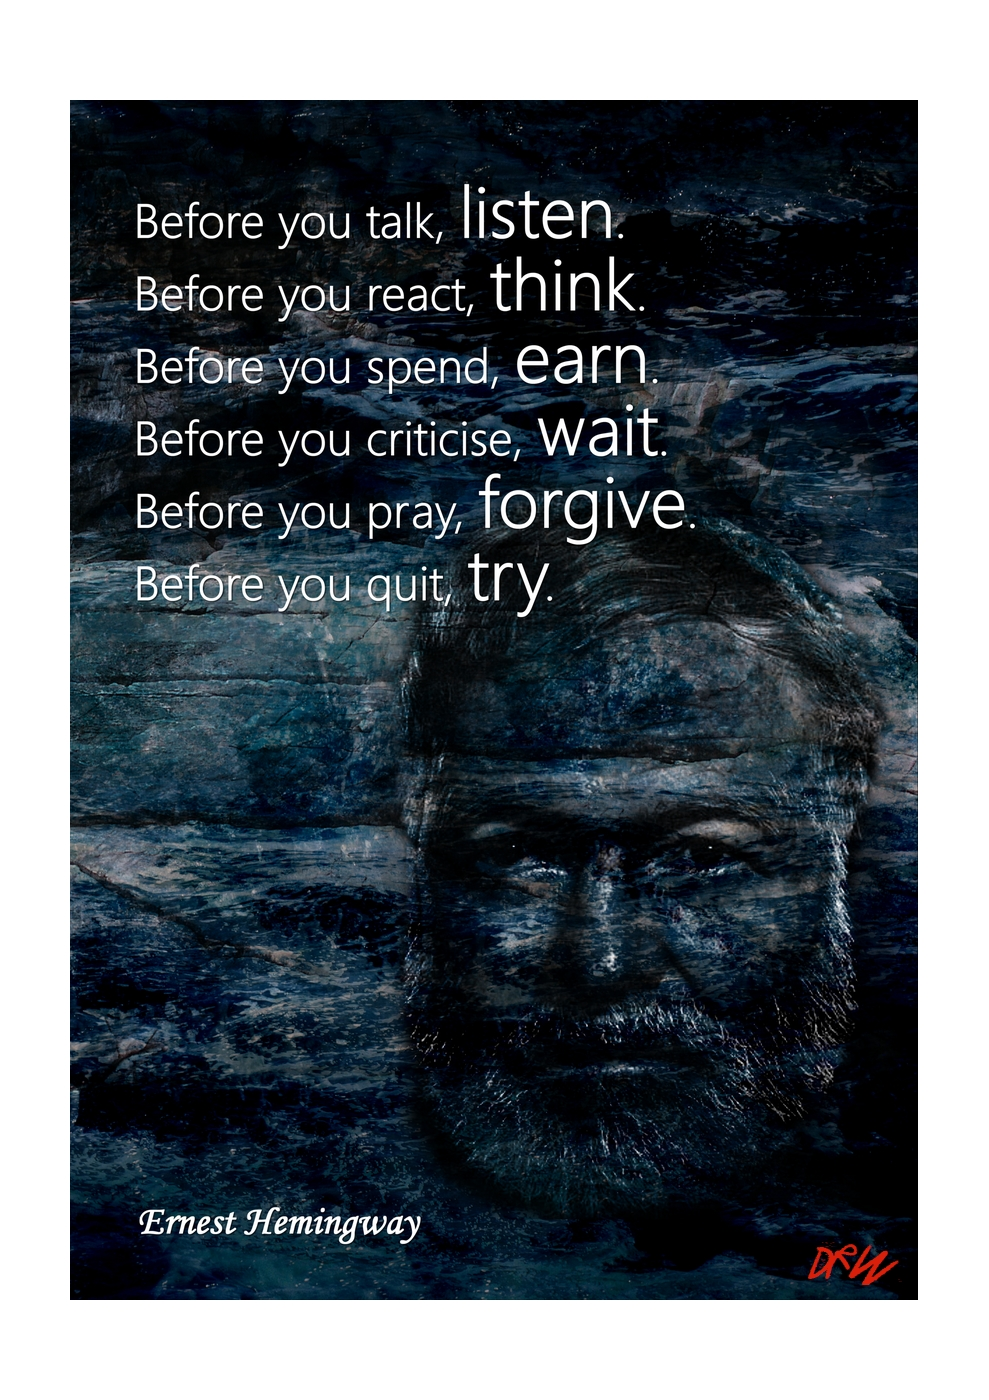 Before you talk, listen. Before you react, think. Before you spend, earn. Before you criticise, wait. Before you pray, forgive. Before you quit, try.  ~ Ernest Hemingway